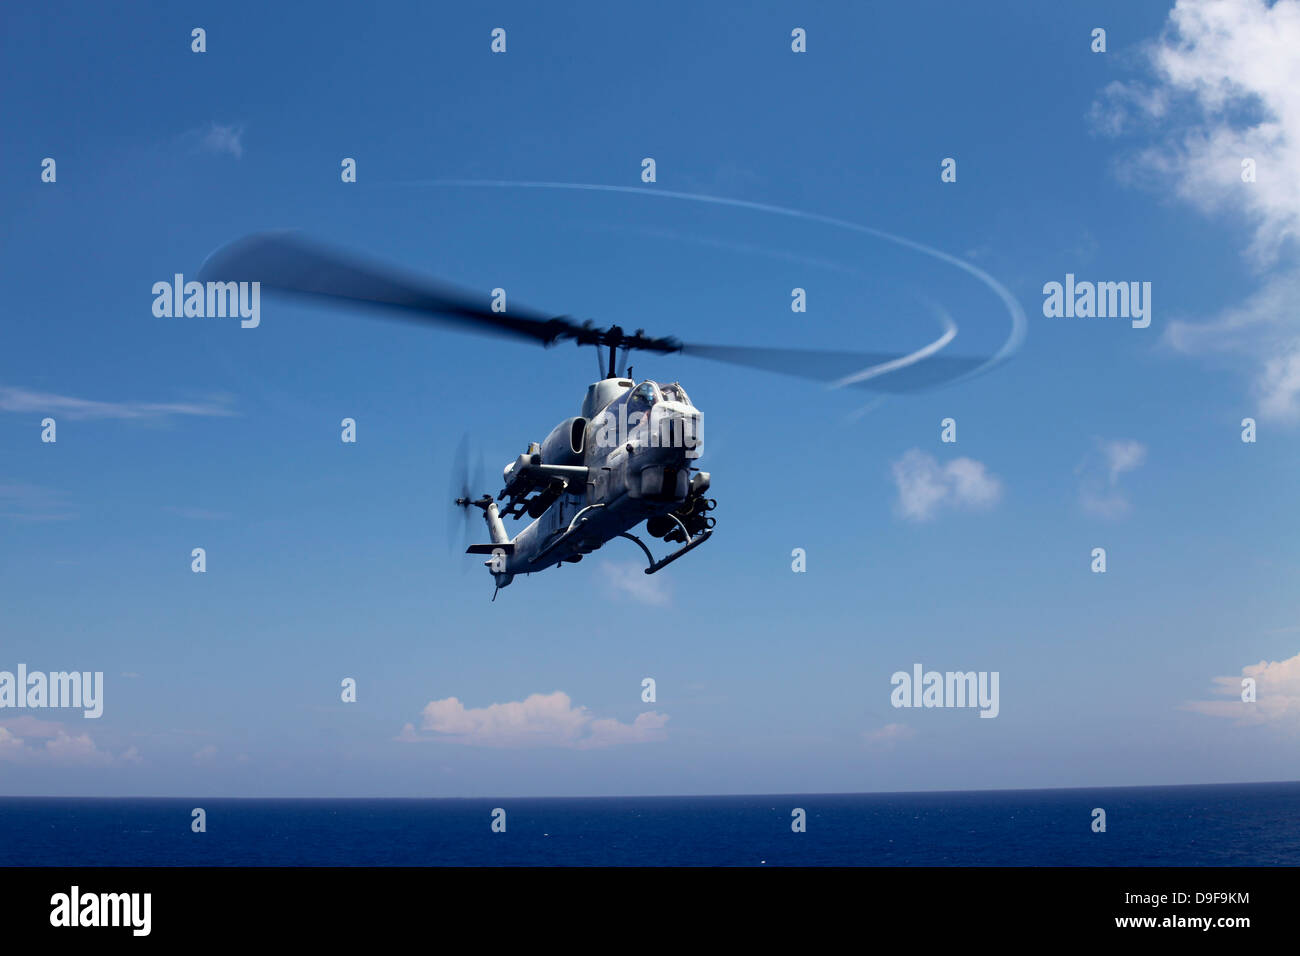 An AH-1 Cobra in flight over the Philippine Sea. - Stock Image